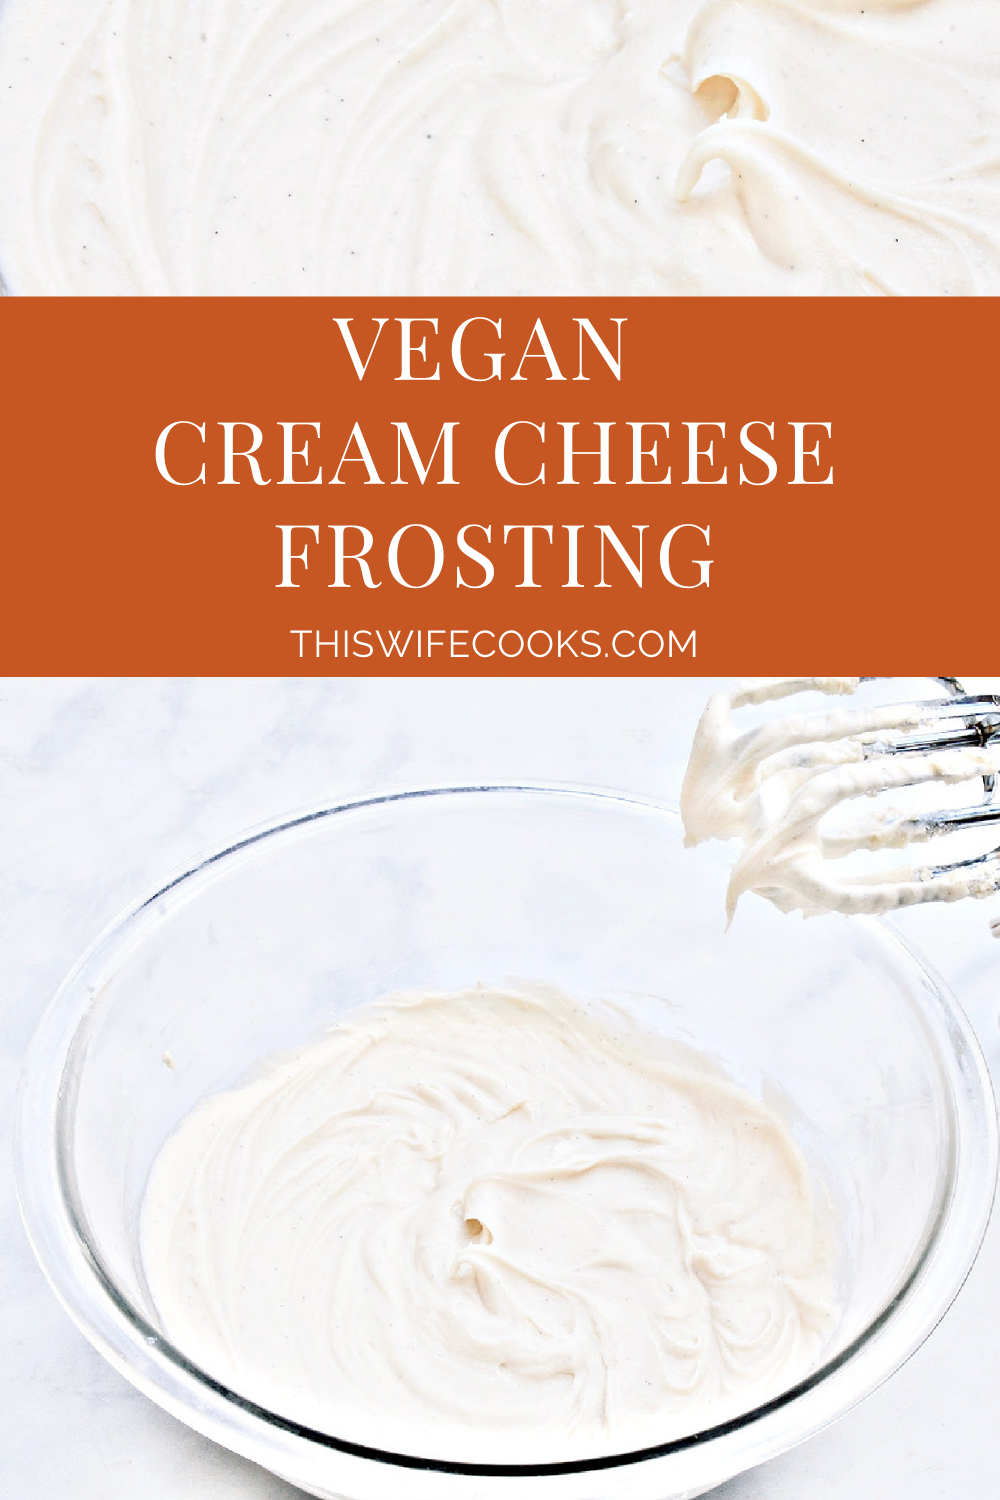 Vegan Cream Cheese Frosting ~ A rich and creamy dairy-free frosting made with 4 simple ingredients. This frosting is perfect for the holidays and everyday desserts, including carrot cake, red velvet cake, and even cookies! via @thiswifecooks